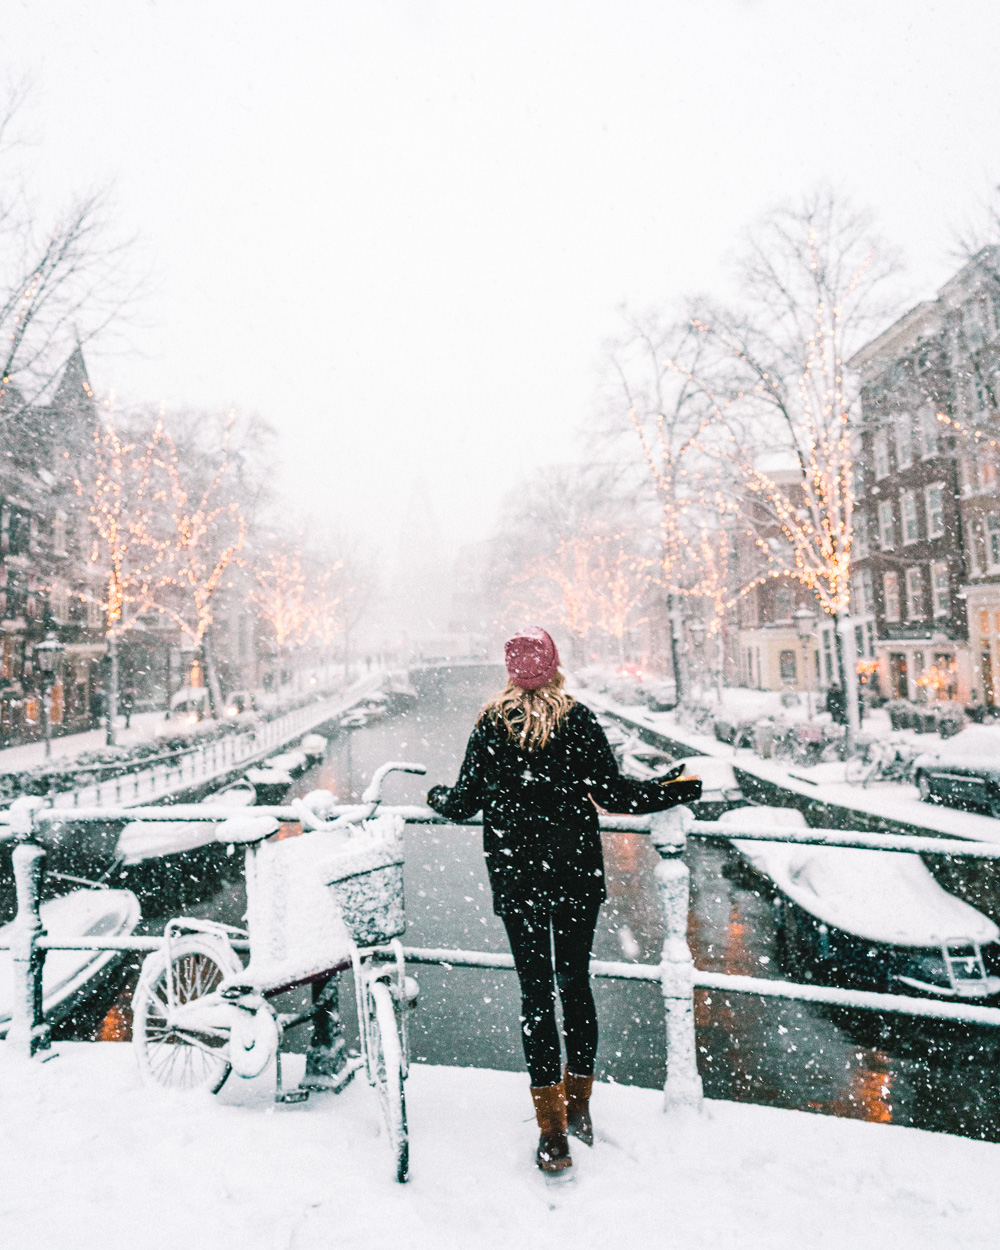 Snow in Amsterdam Netherlands Winter Travel